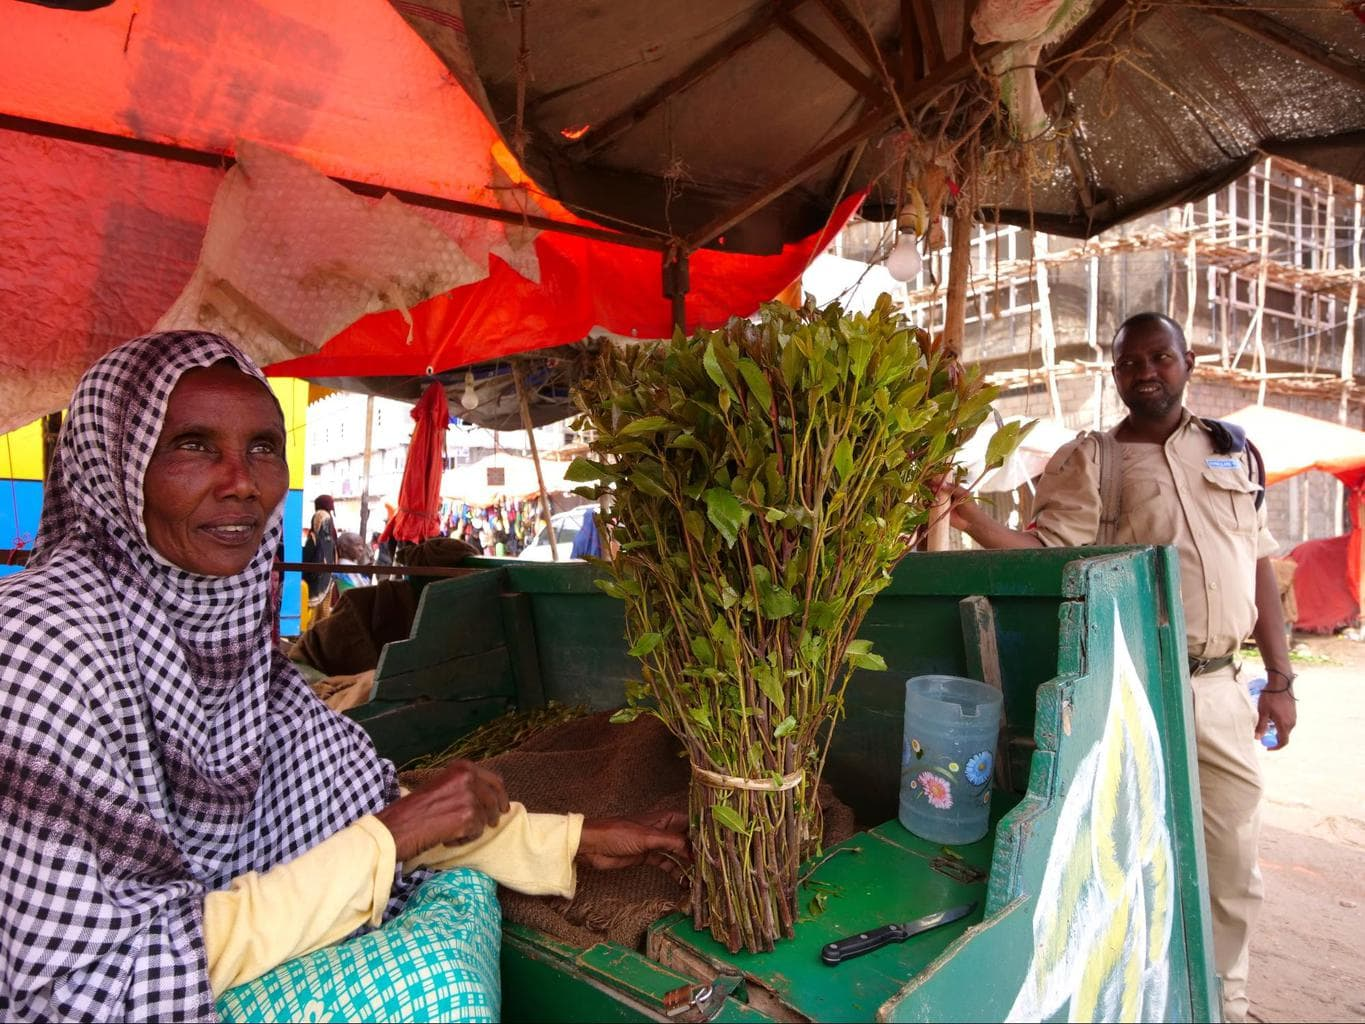 Our Somaliland SPU police escort chatting to a khat seller in Hargeisa